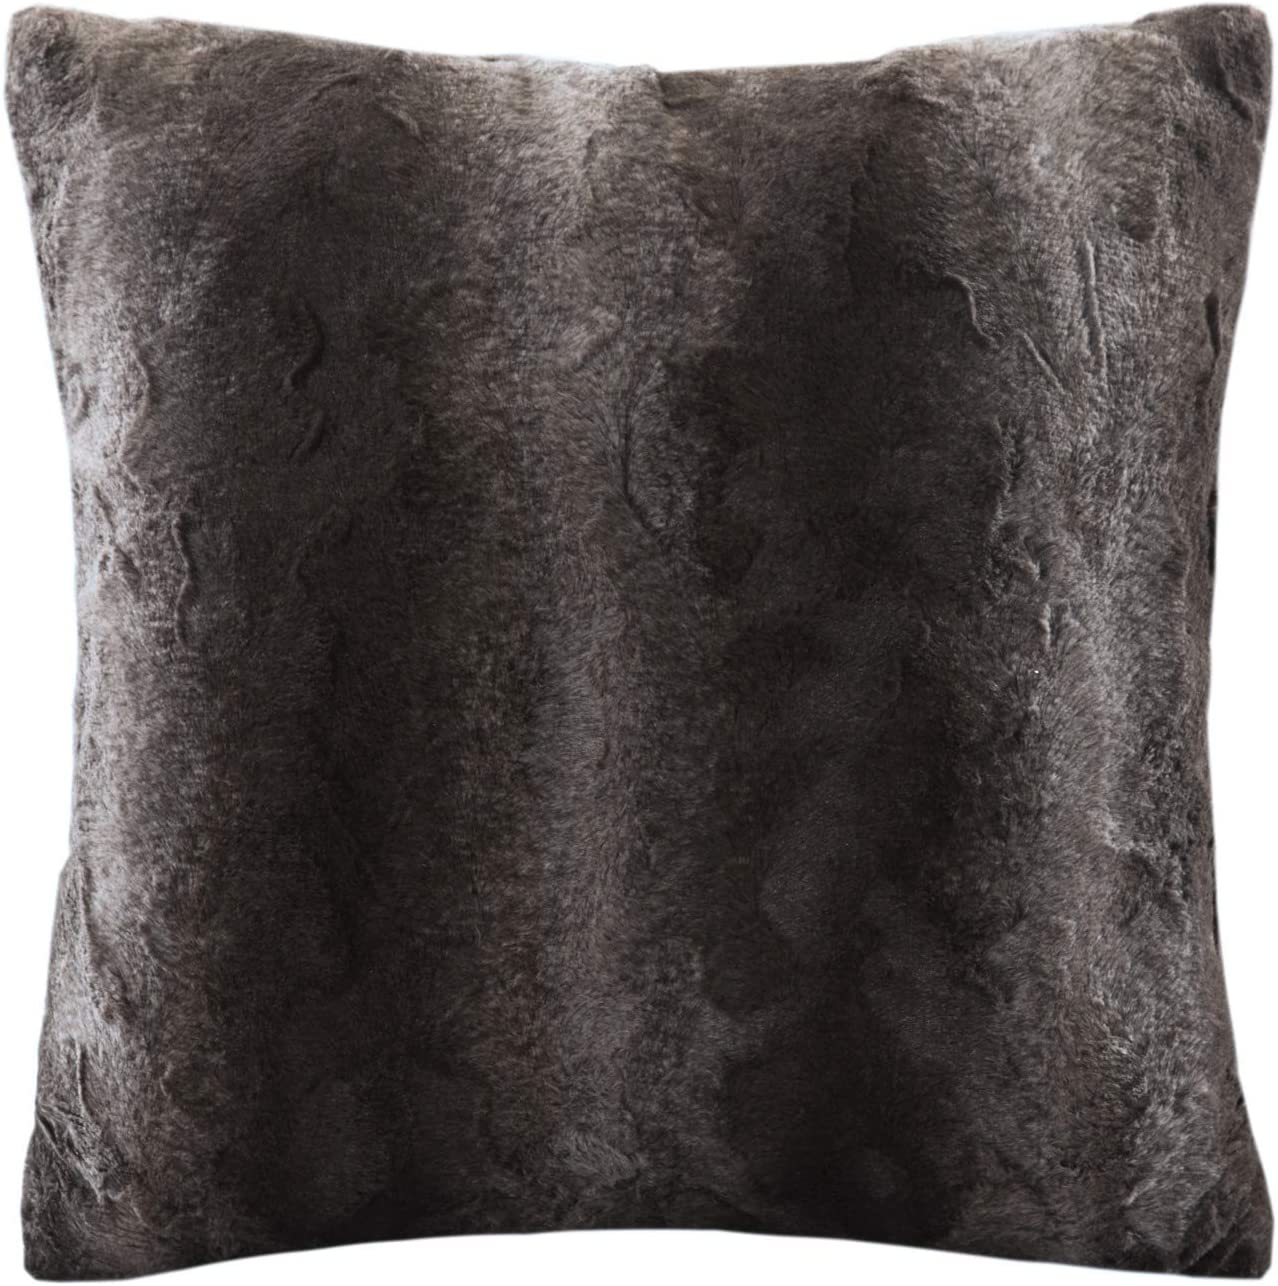 Madison Park Zuri Faux Fur Ombre Stripe Ultra Soft Luxury Decorative Throw Pillows for Couch Bed with Insert, 20x20, Chocolate